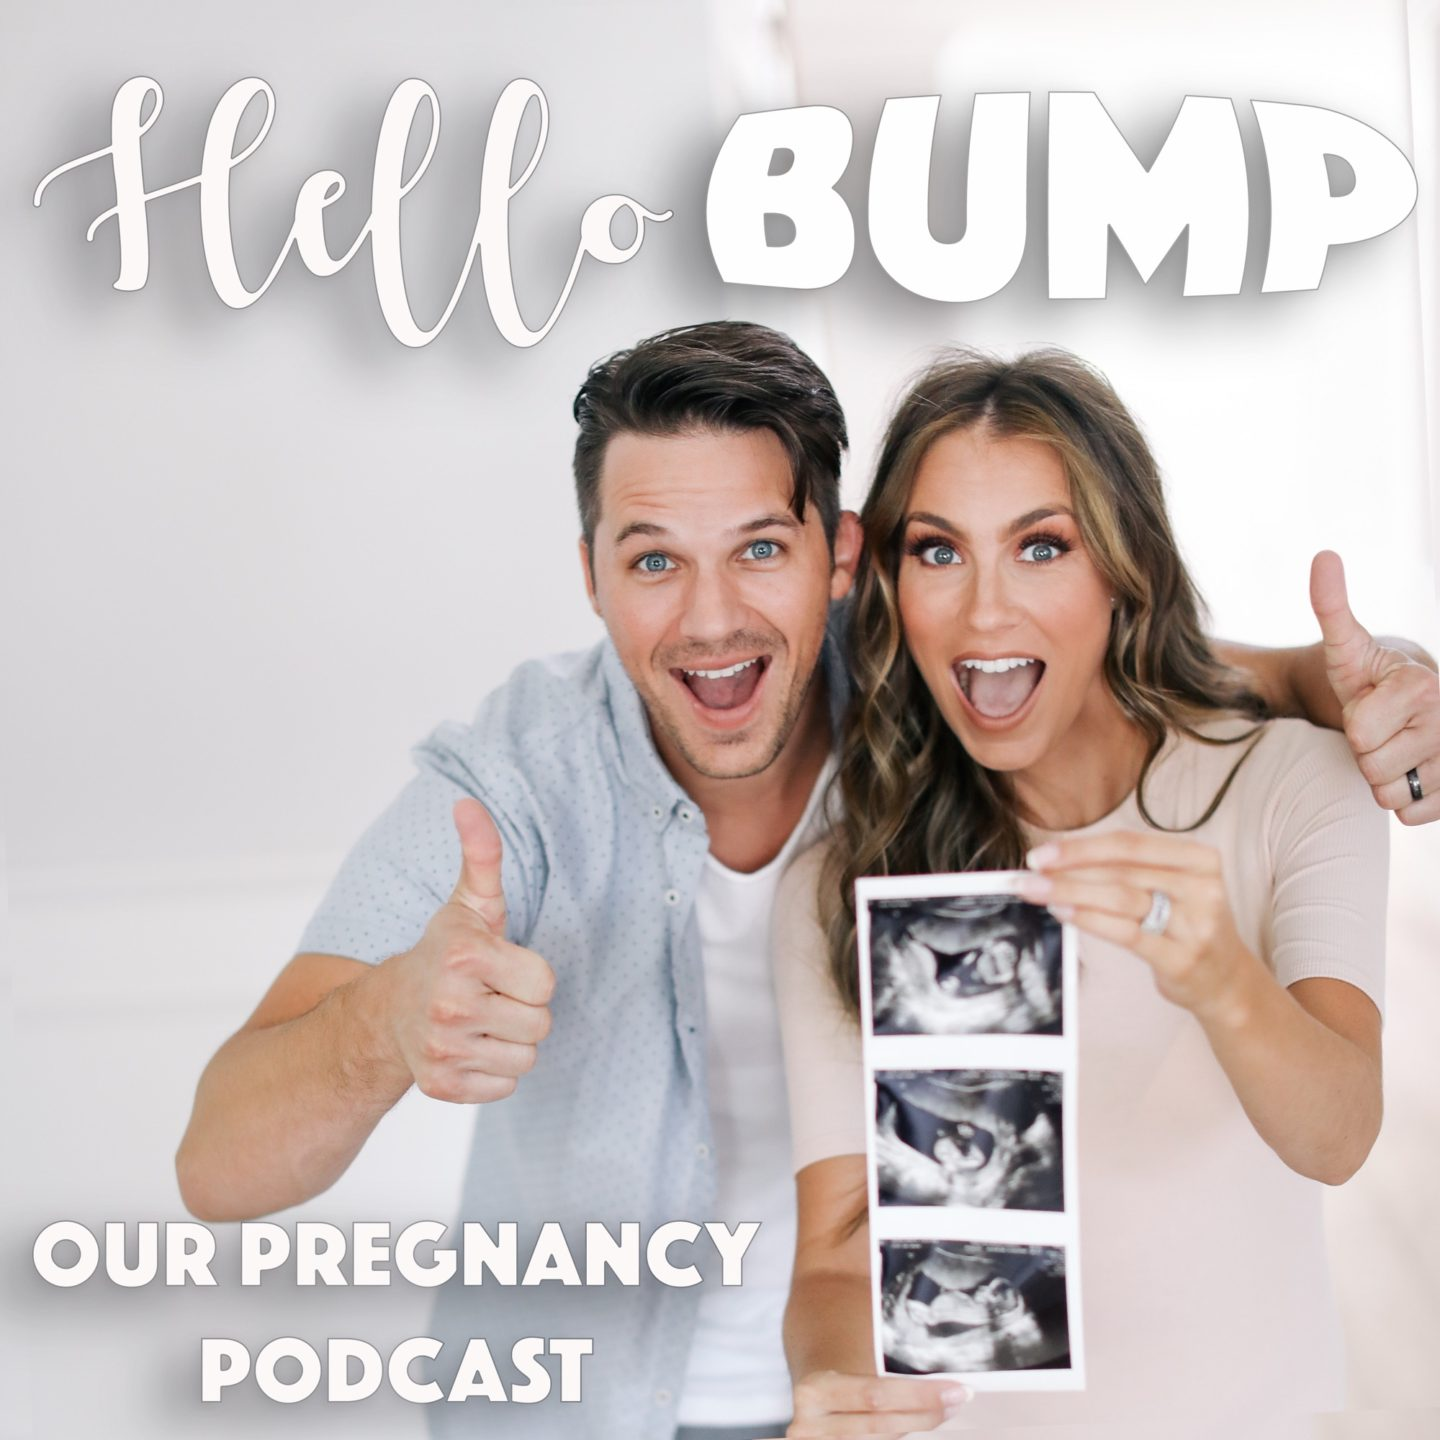 HELLO BUMP EPISODES 8 & 9